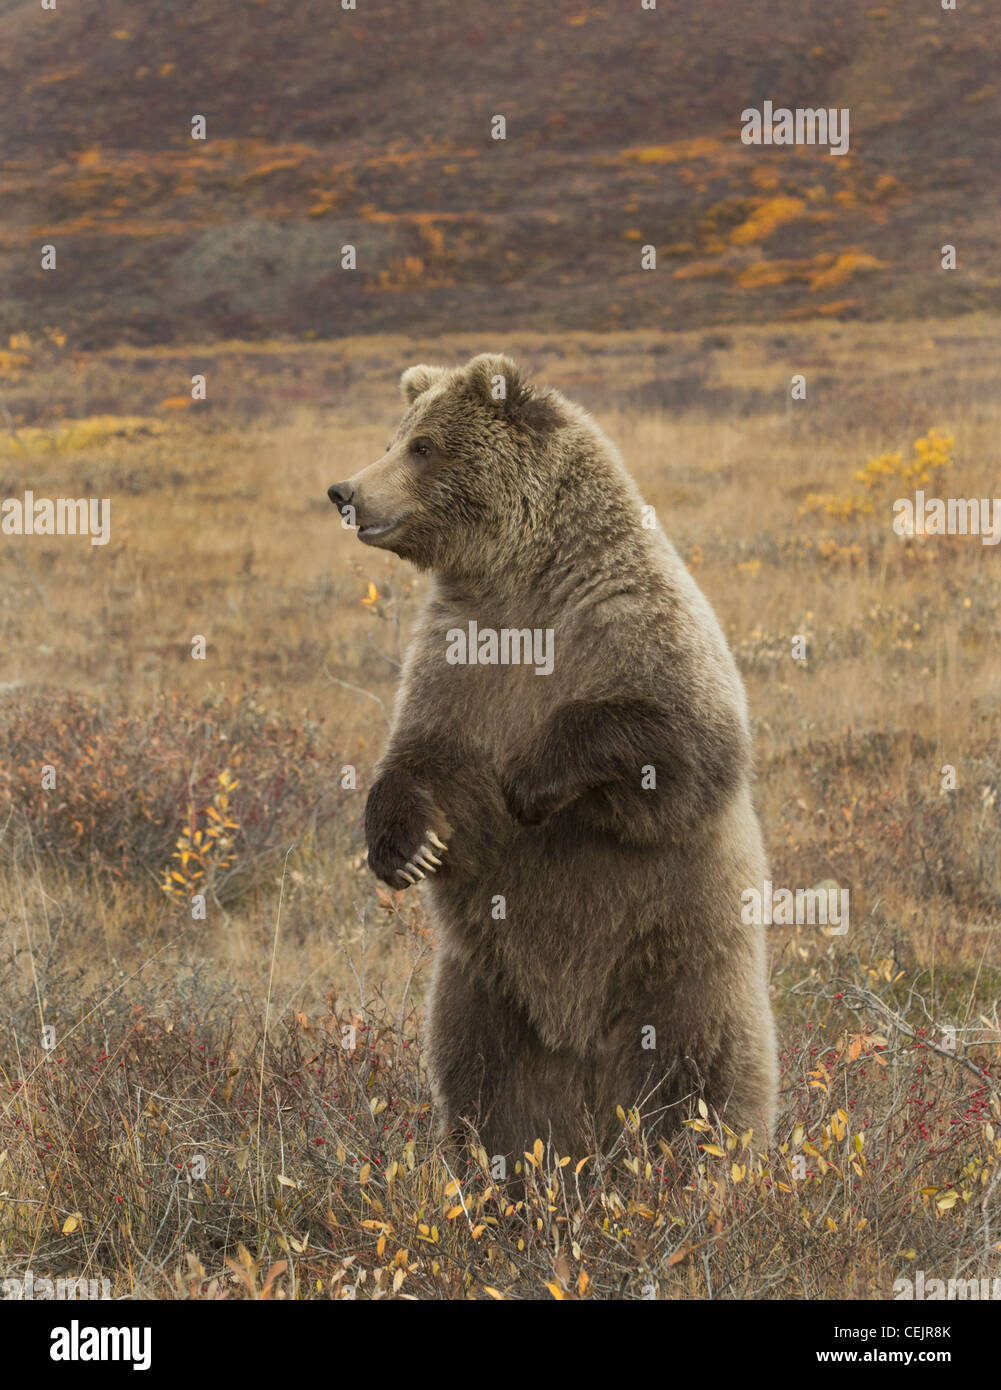 This Grizzly Bear is standing up for a better look around while their sense of smell is acute their vision is lacking - Stock Image